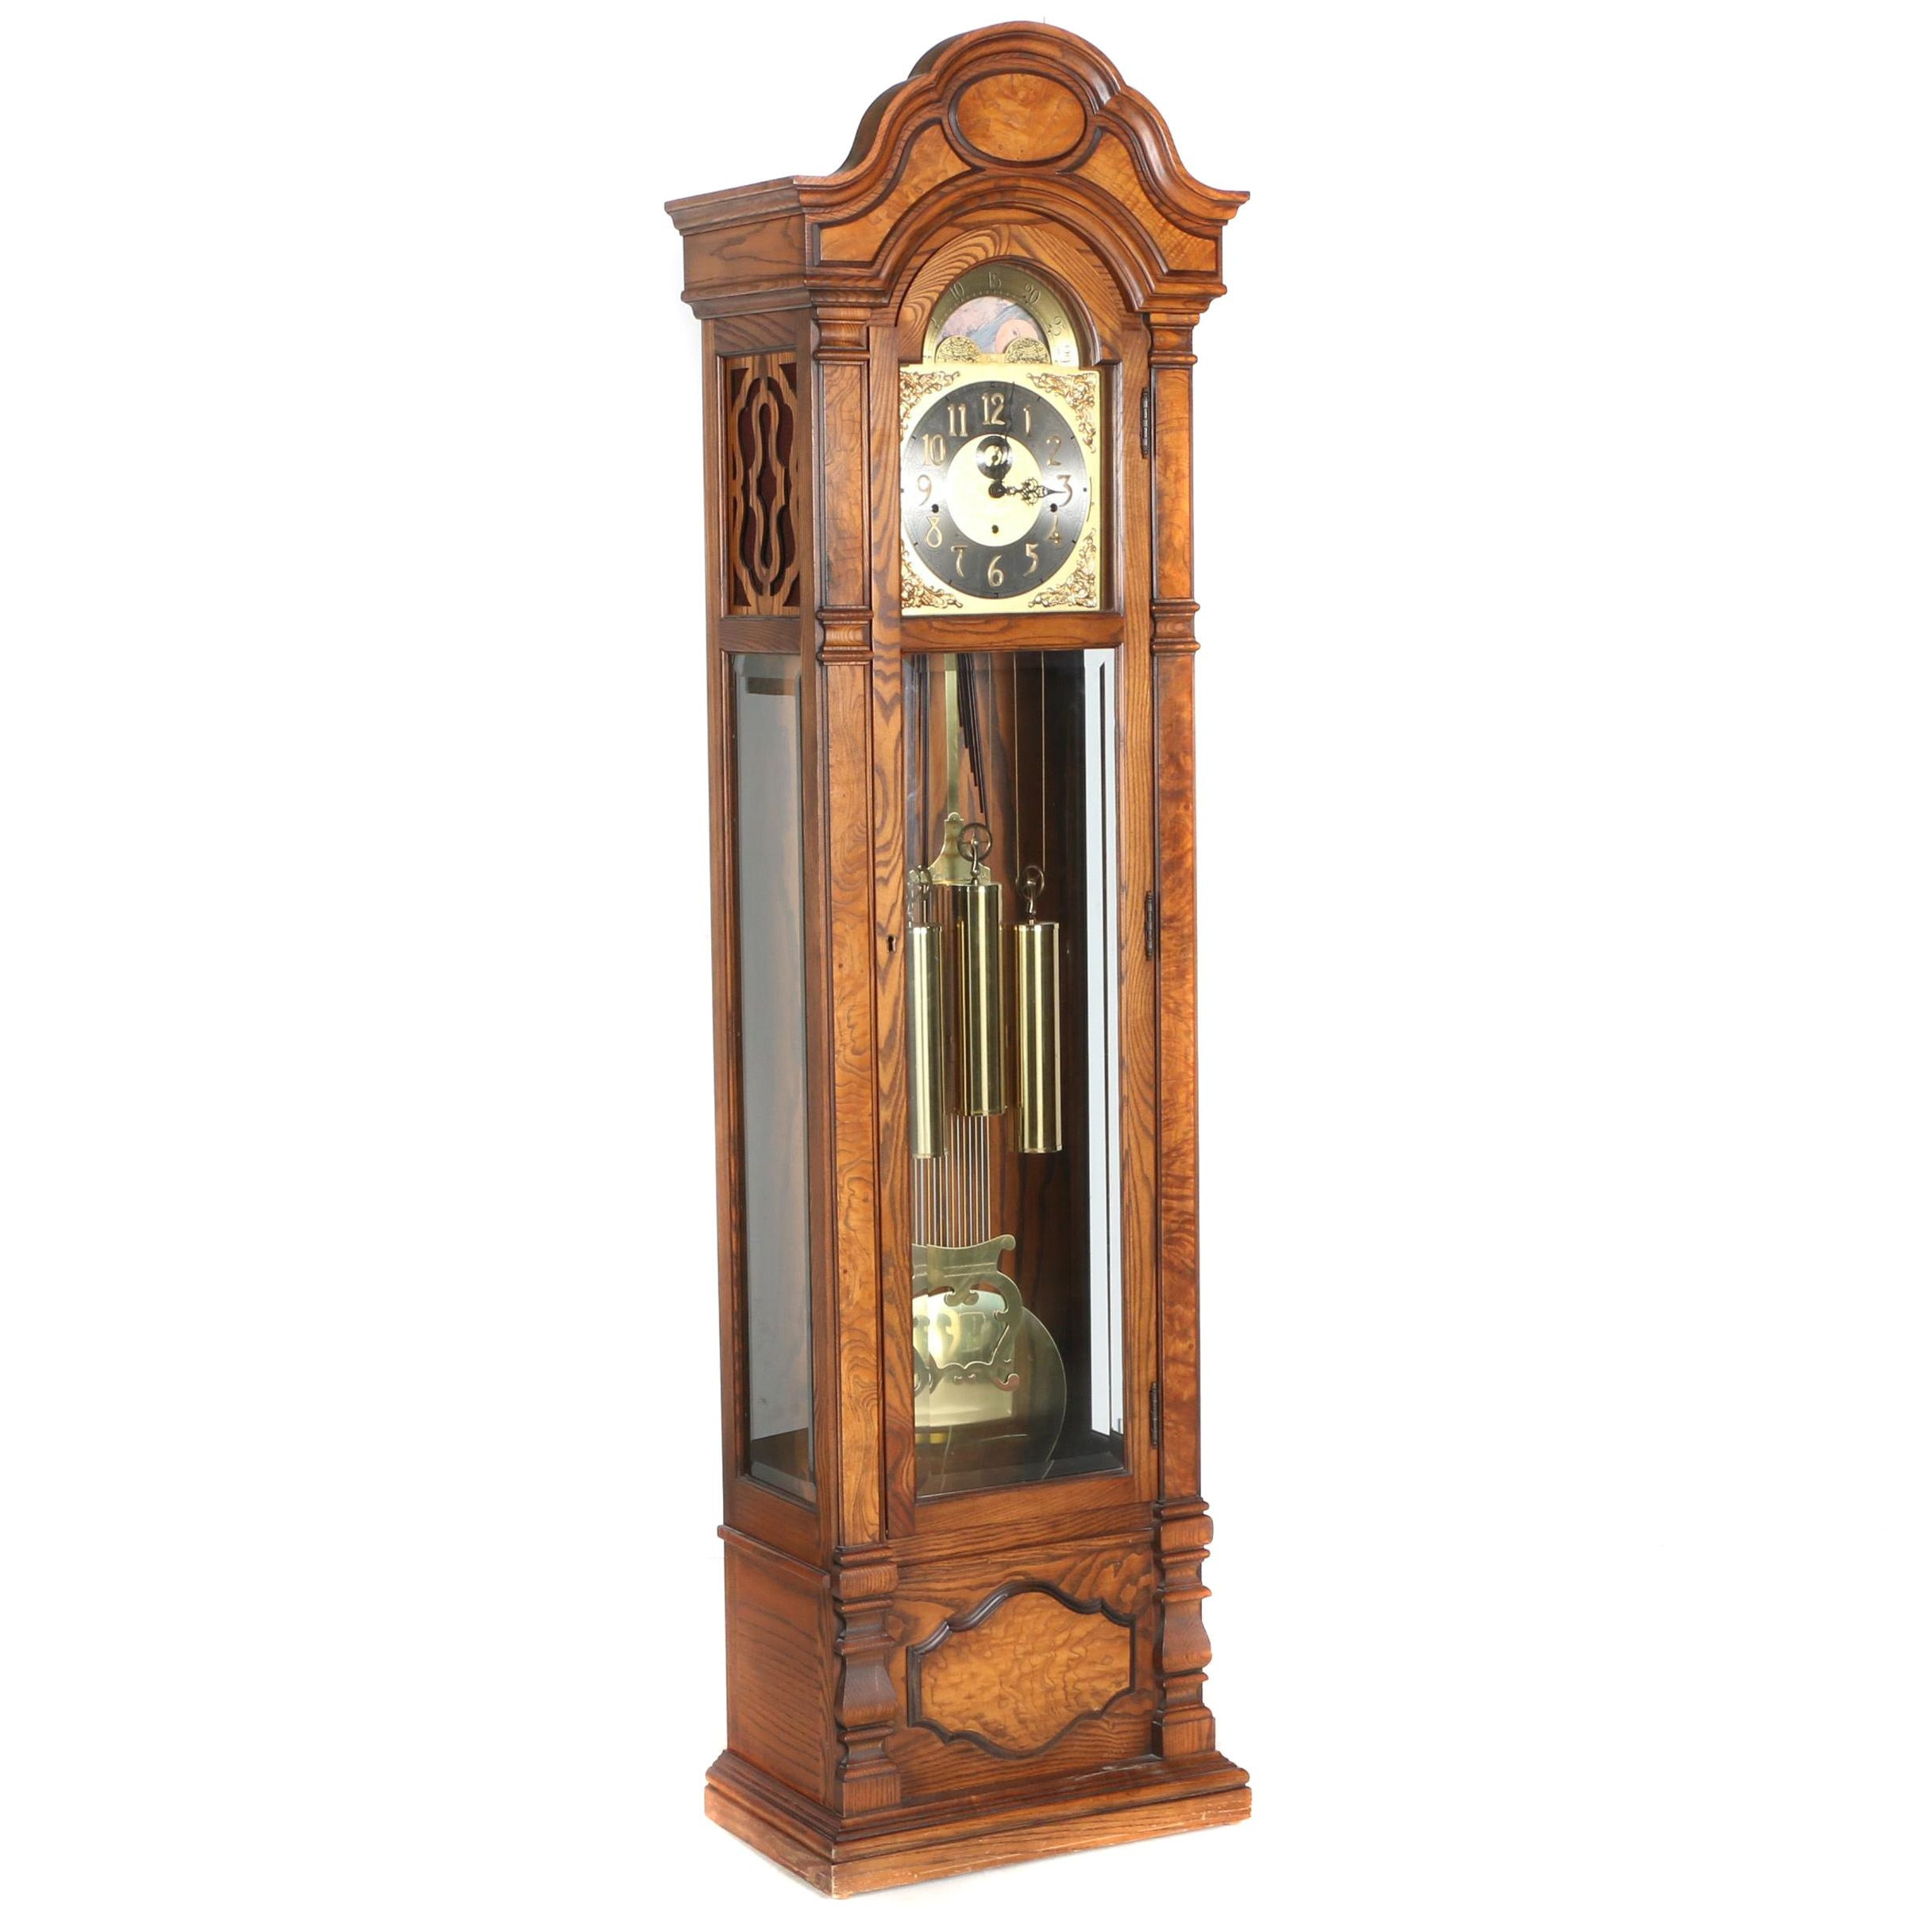 Colonial Oak Grandfather Clock with Moon Phase Dial